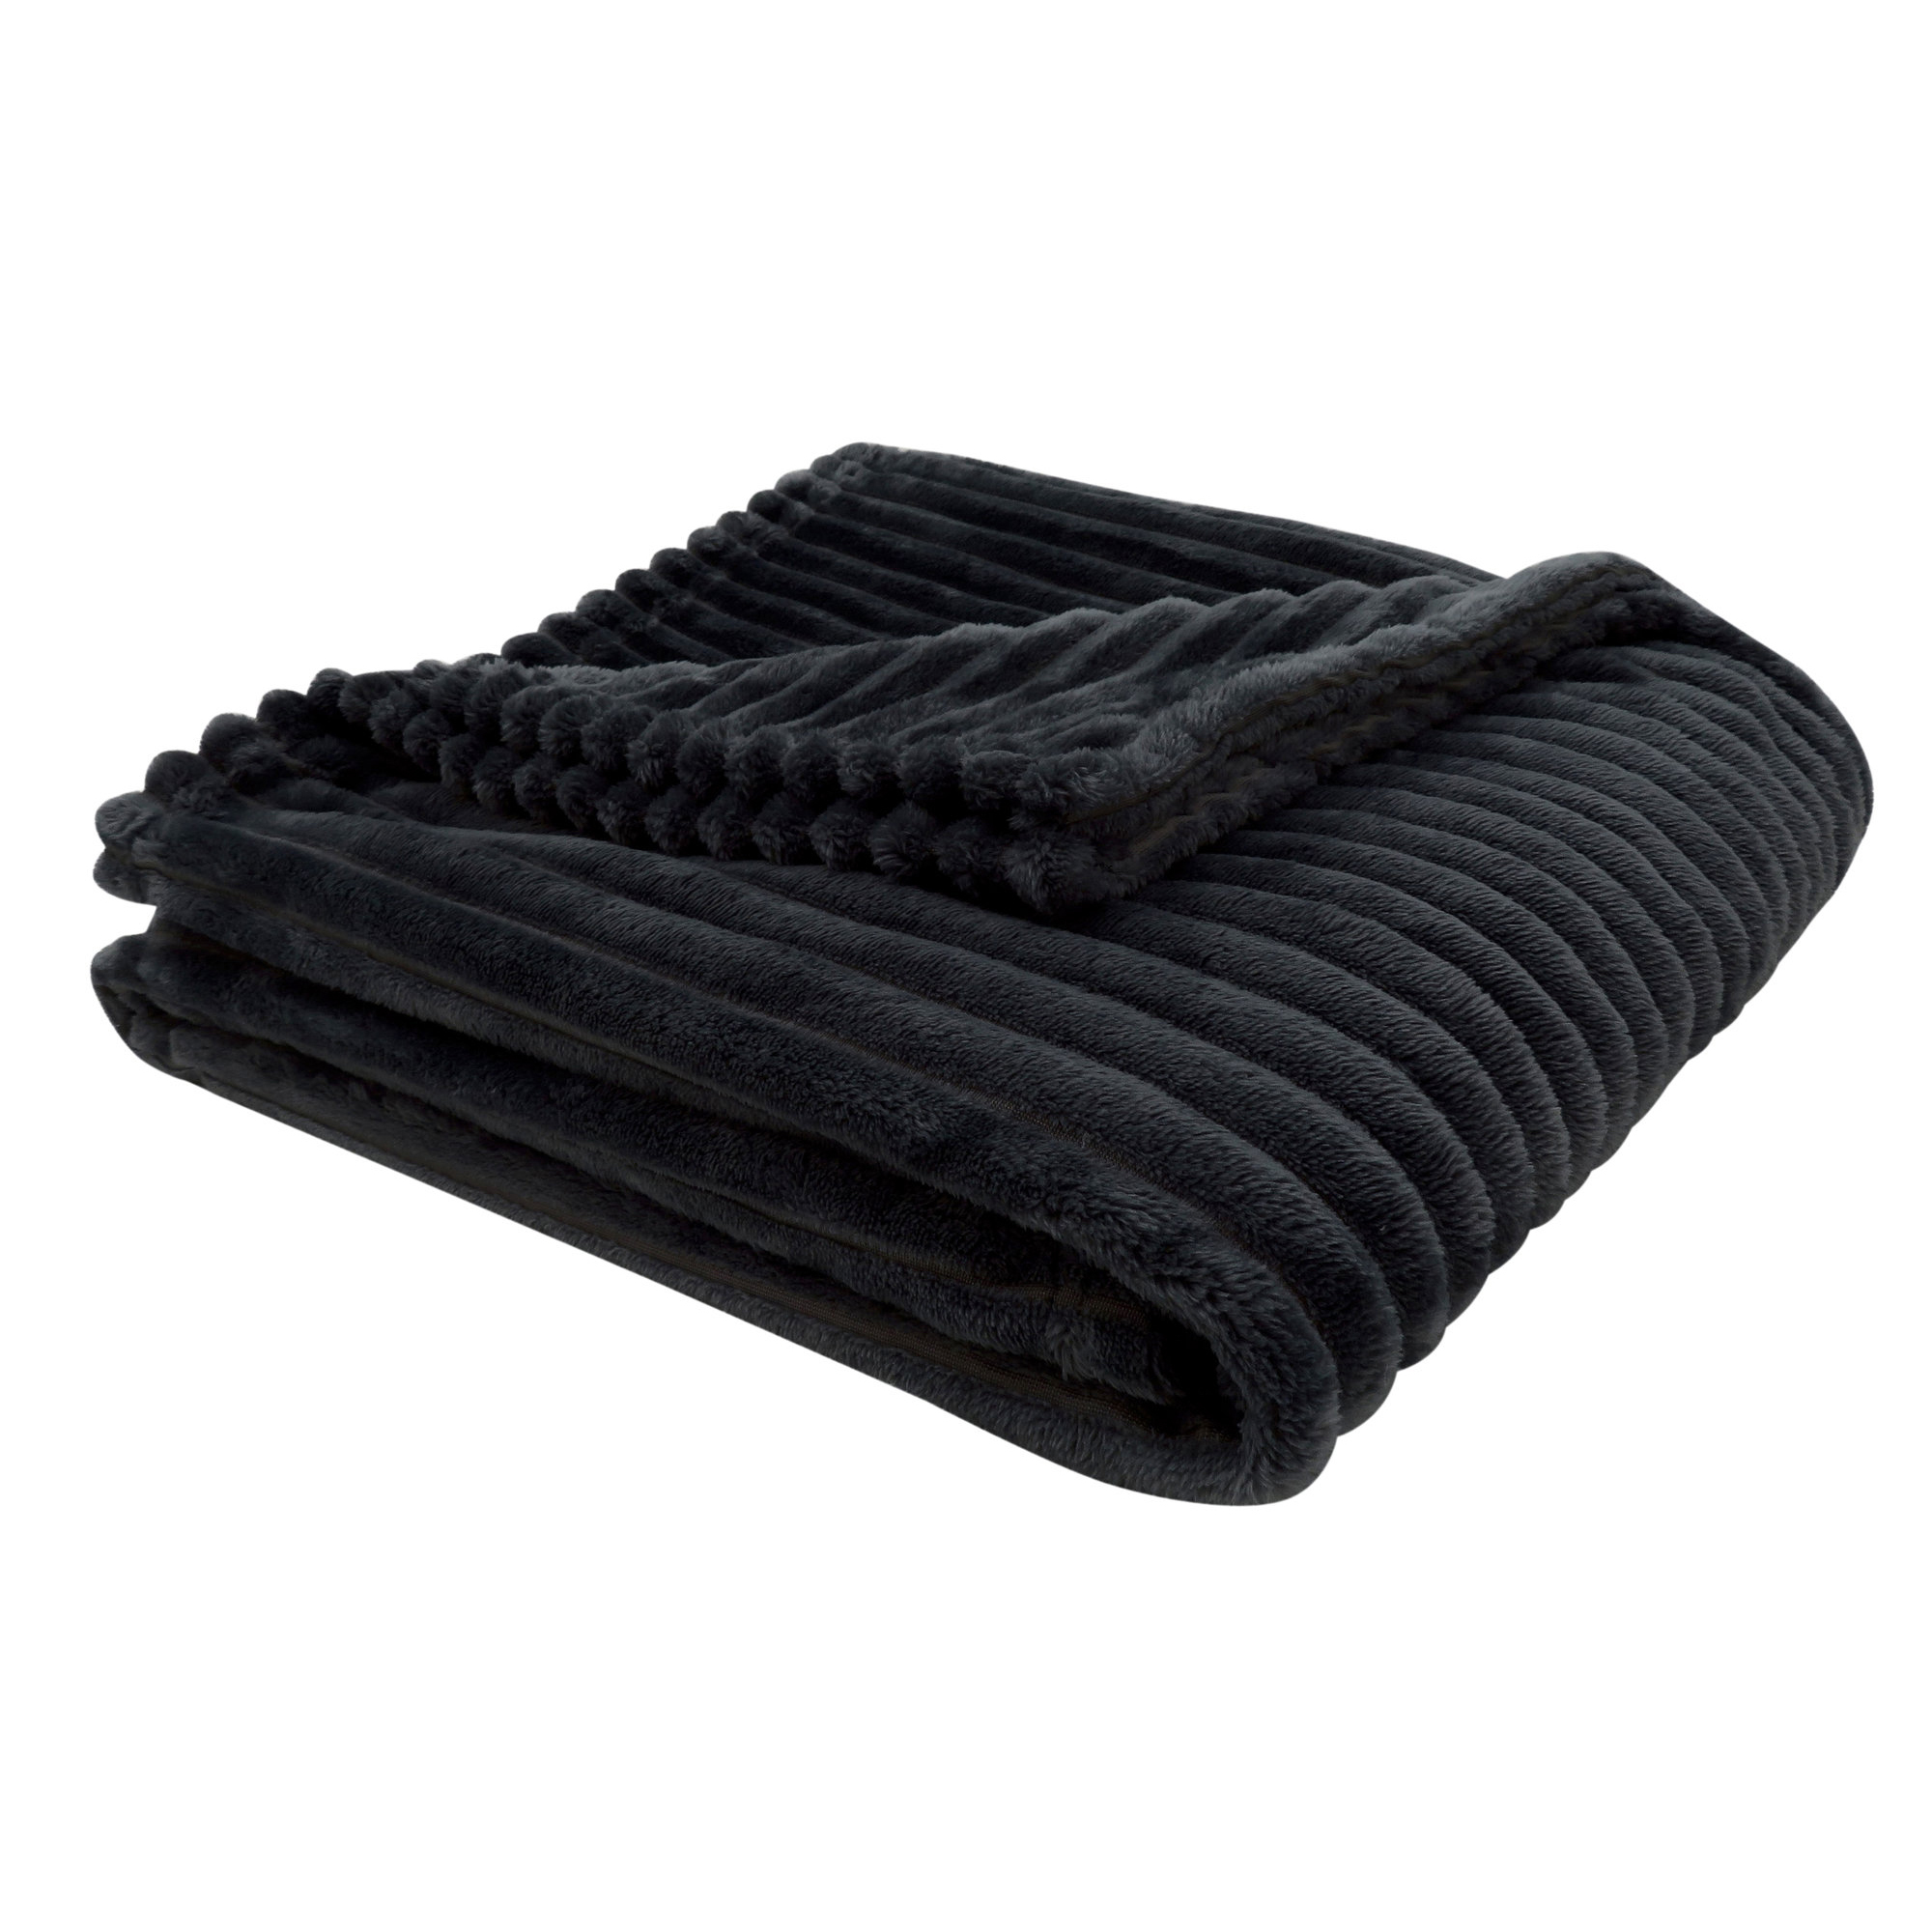 "50""x 60"" Throw Black Ultra Soft Ribbed Style"